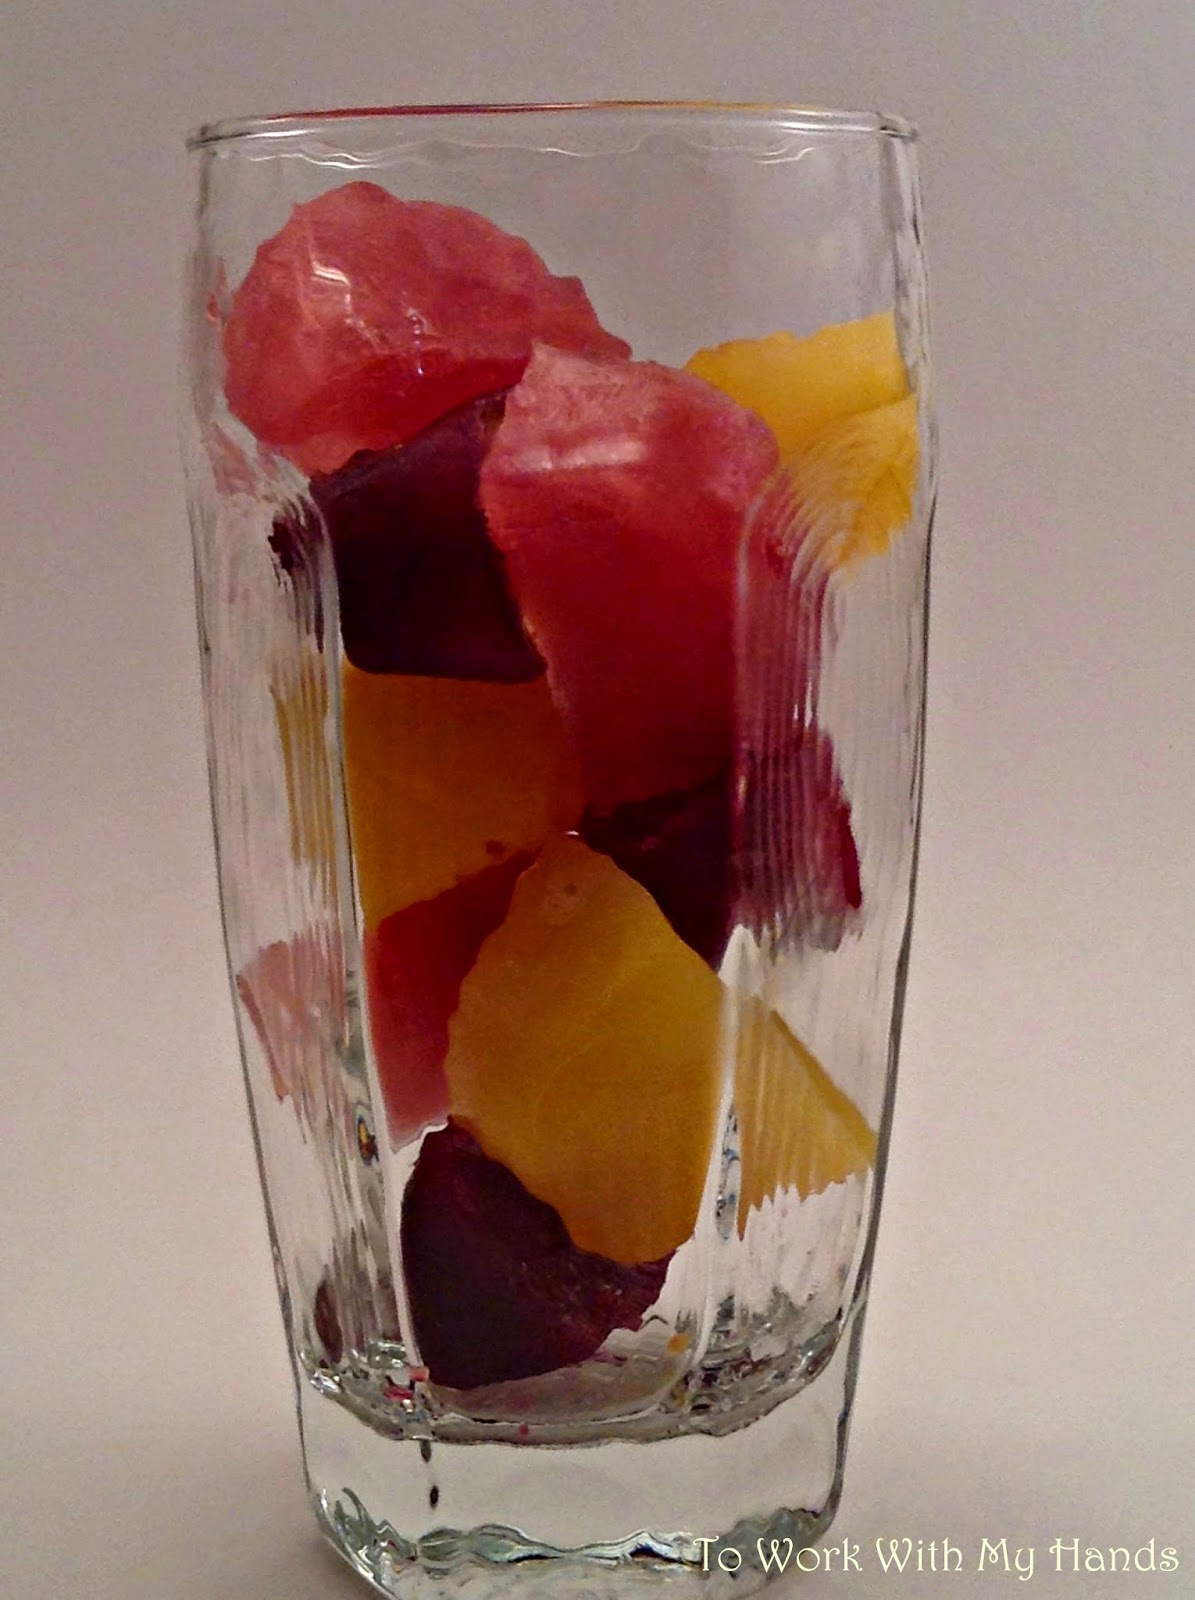 To make polka dot punch, simple freeze orange, grape, and cranberry juices in ice cube trays until frozen solid. When ready to serve, place alternating cubes into a tall clear glass and add lemon-lime soda or ginger ale.